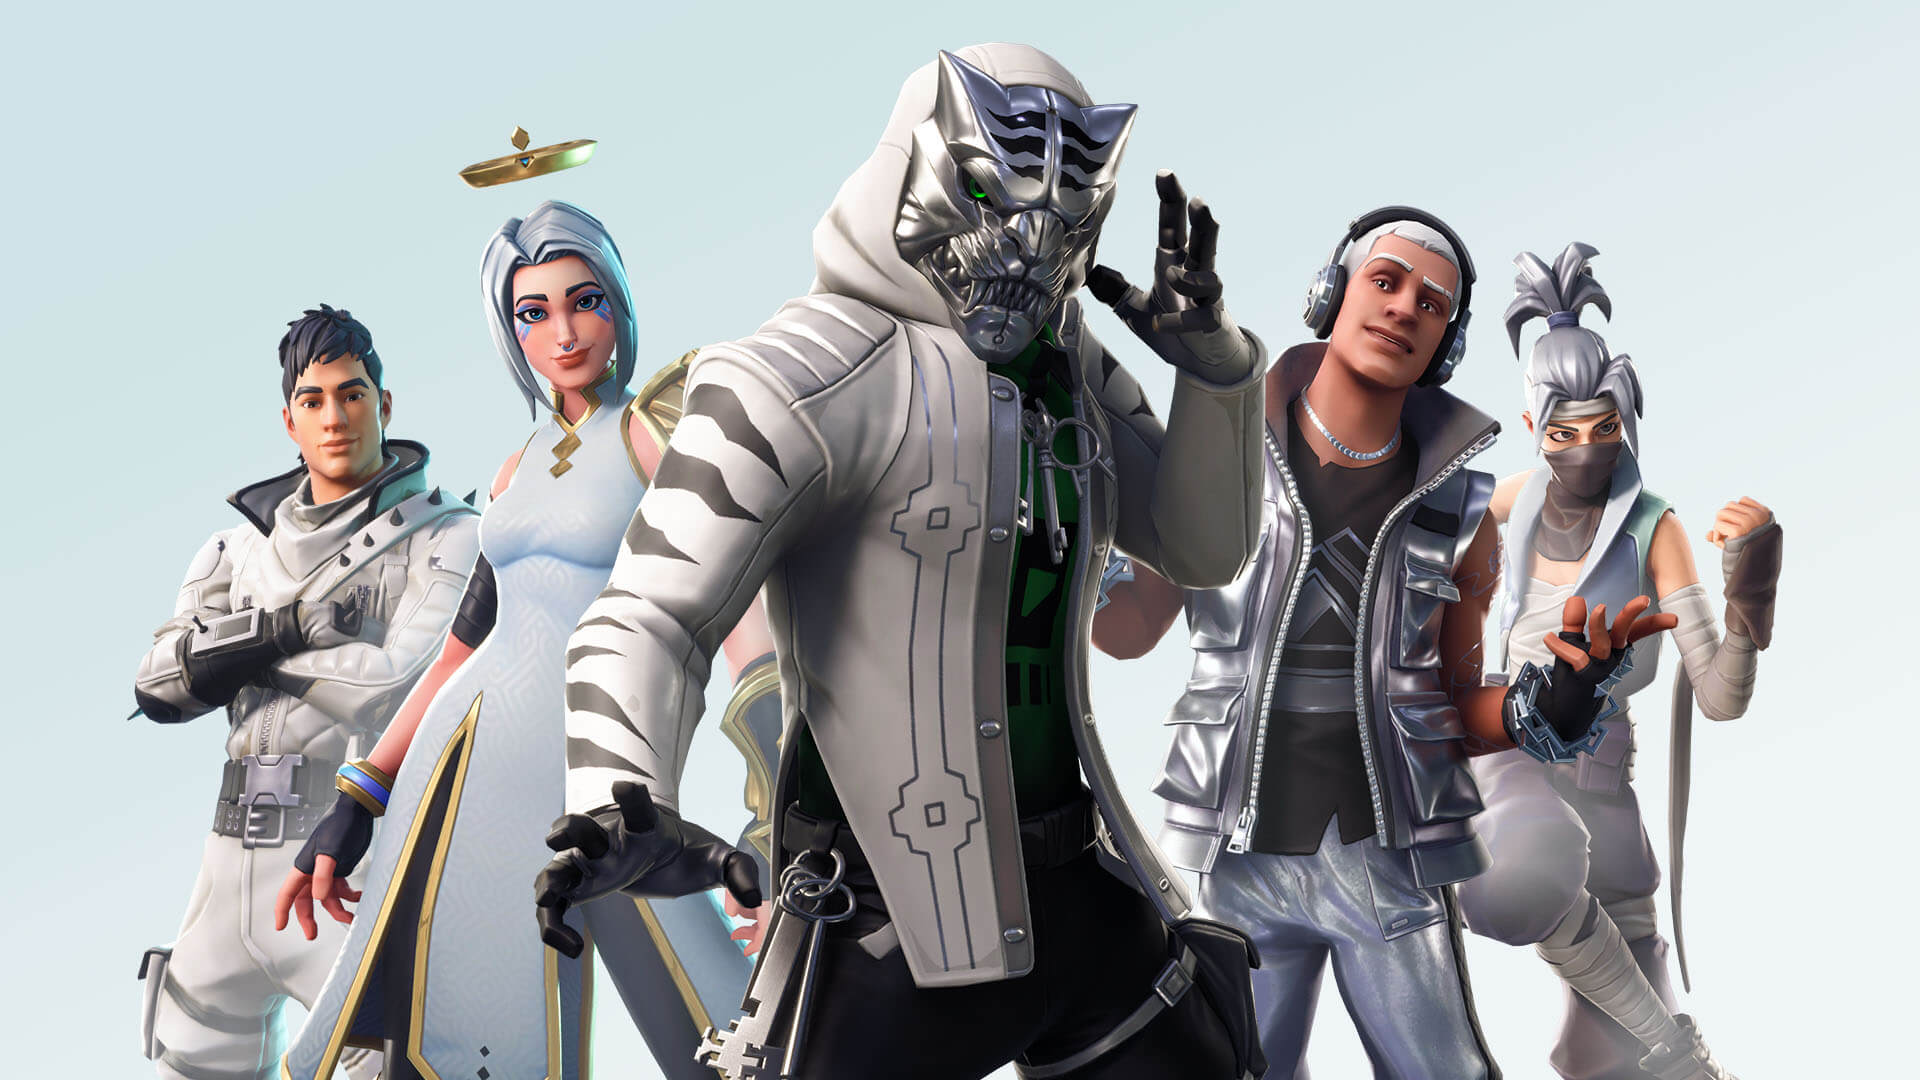 How To Install Fortnite on Android Devices